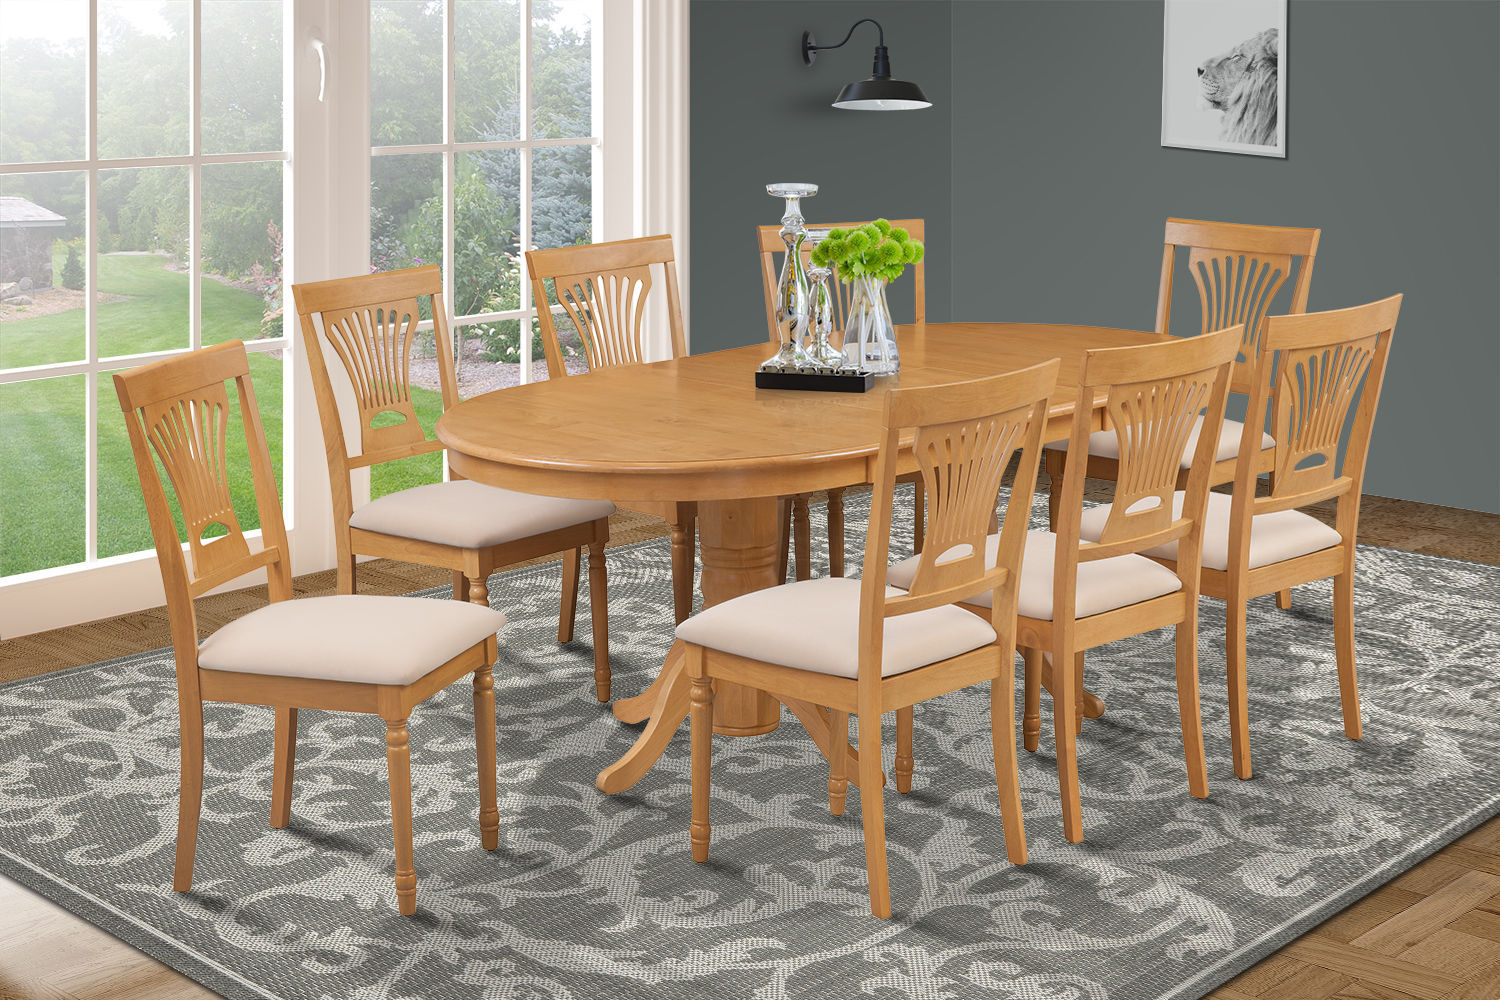 5 PIECE OVAL DINING ROOM TABLE SET w/ 4 SOFT-PADDED CHAIRS IN OAK FINISH